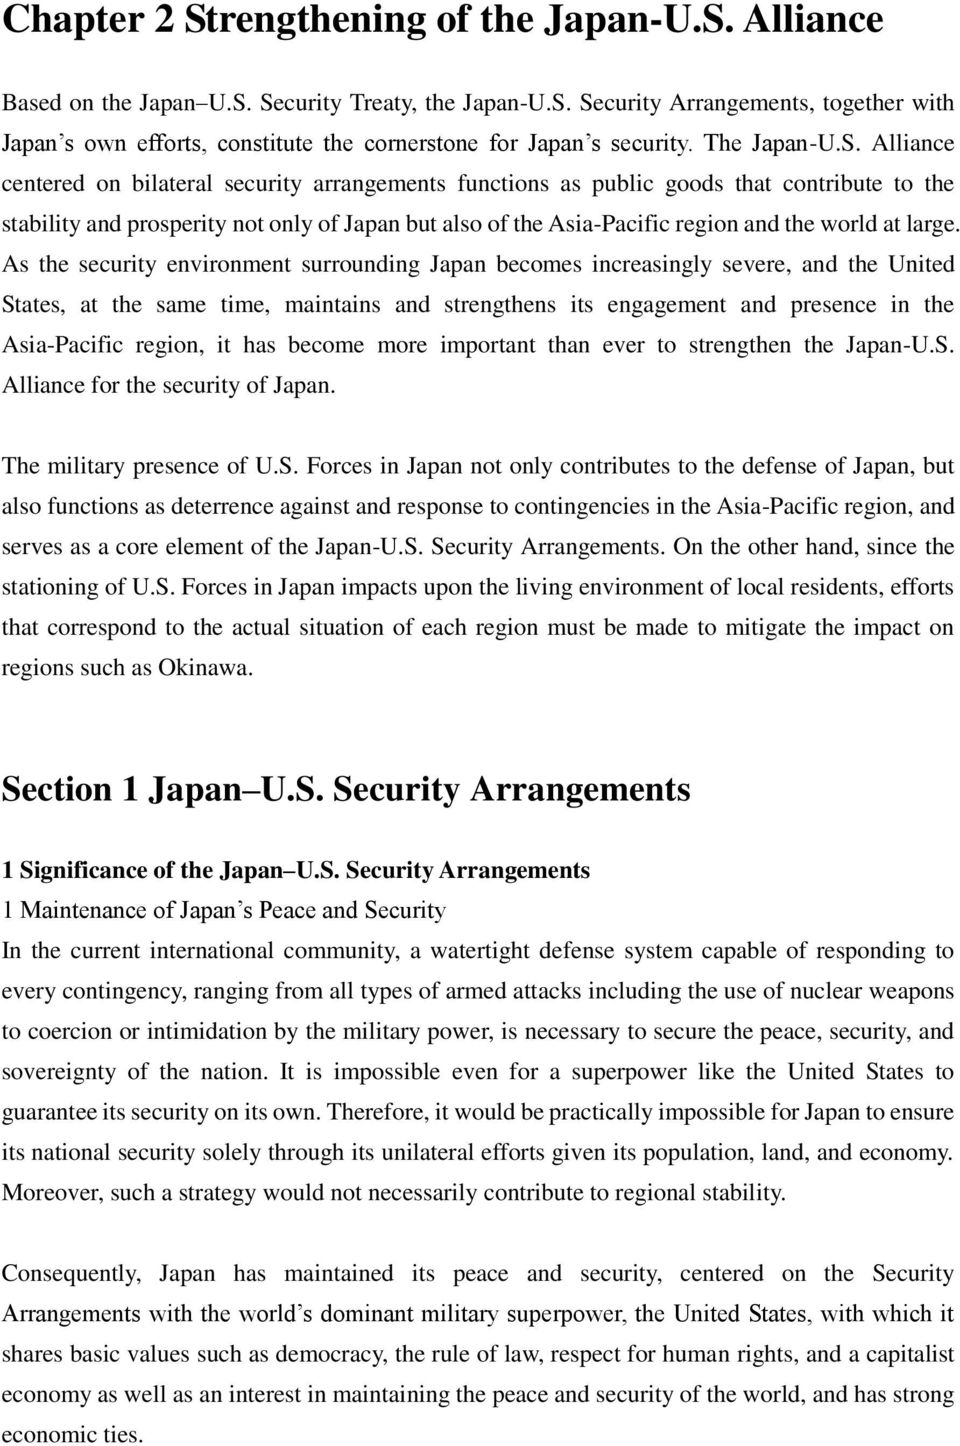 Alliance centered on bilateral security arrangements functions as public goods that contribute to the stability and prosperity not only of Japan but also of the Asia-Pacific region and the world at